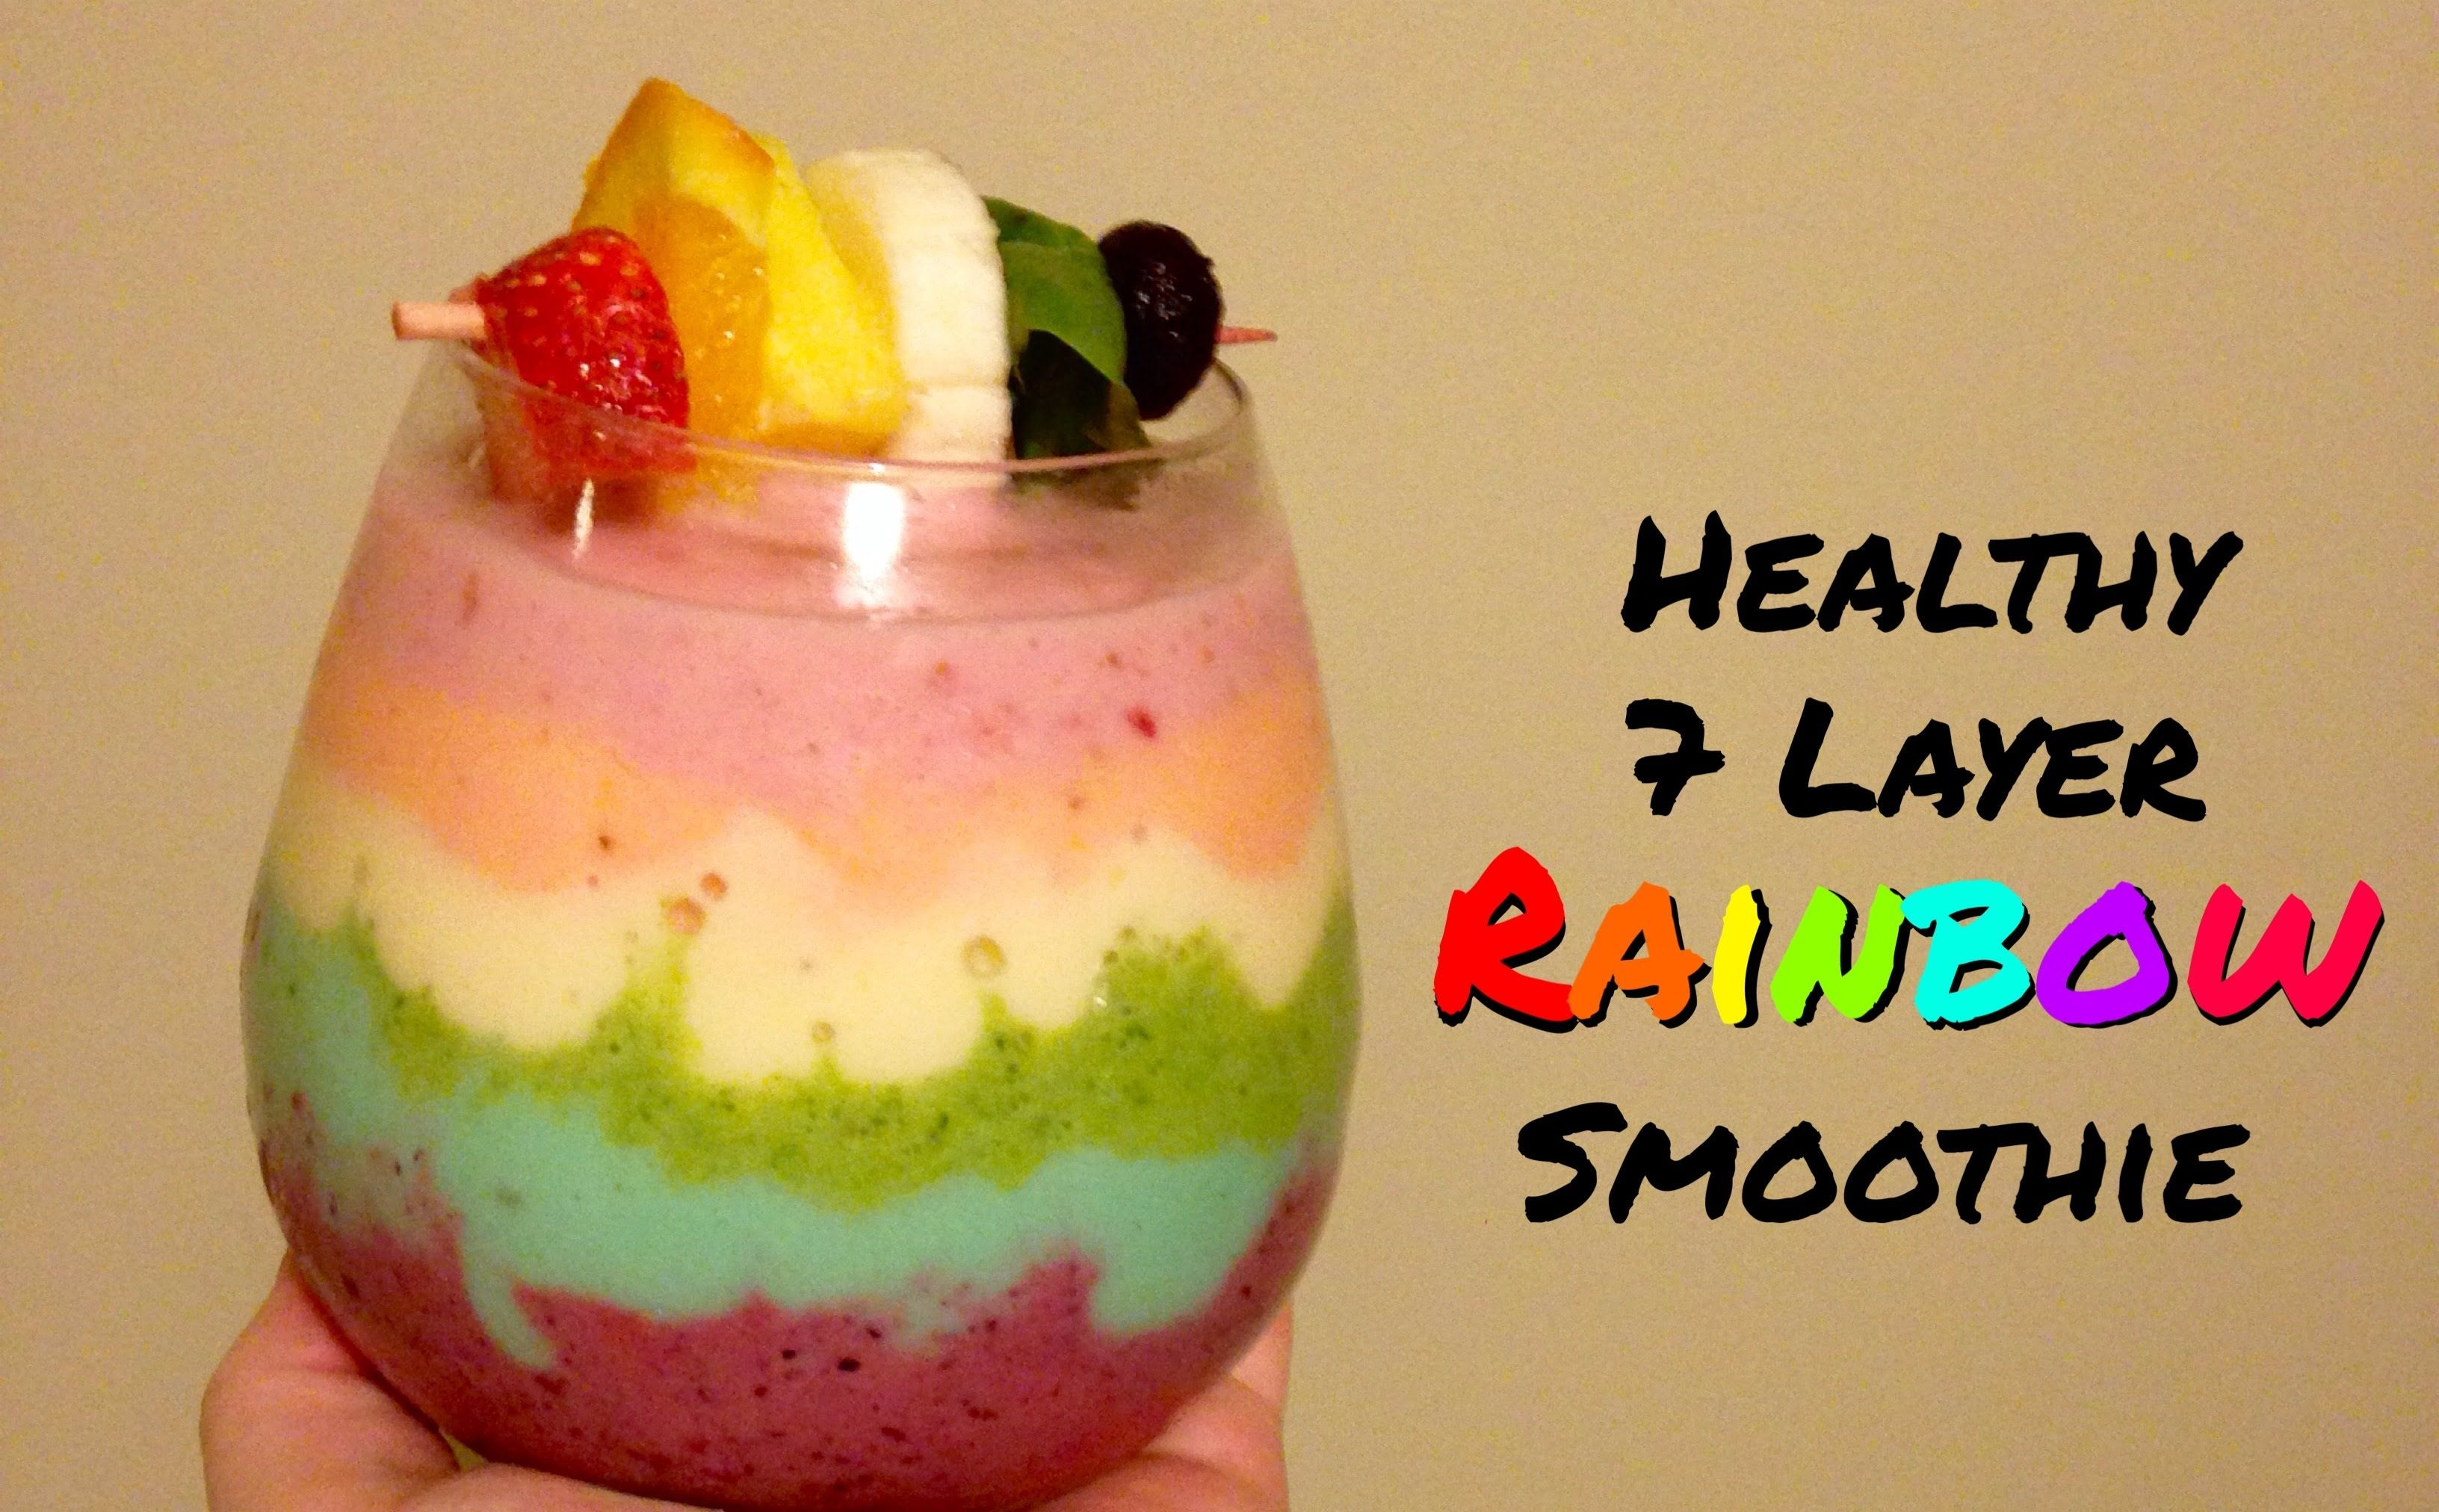 Healthy 7 Layer Rainbow Smoothie